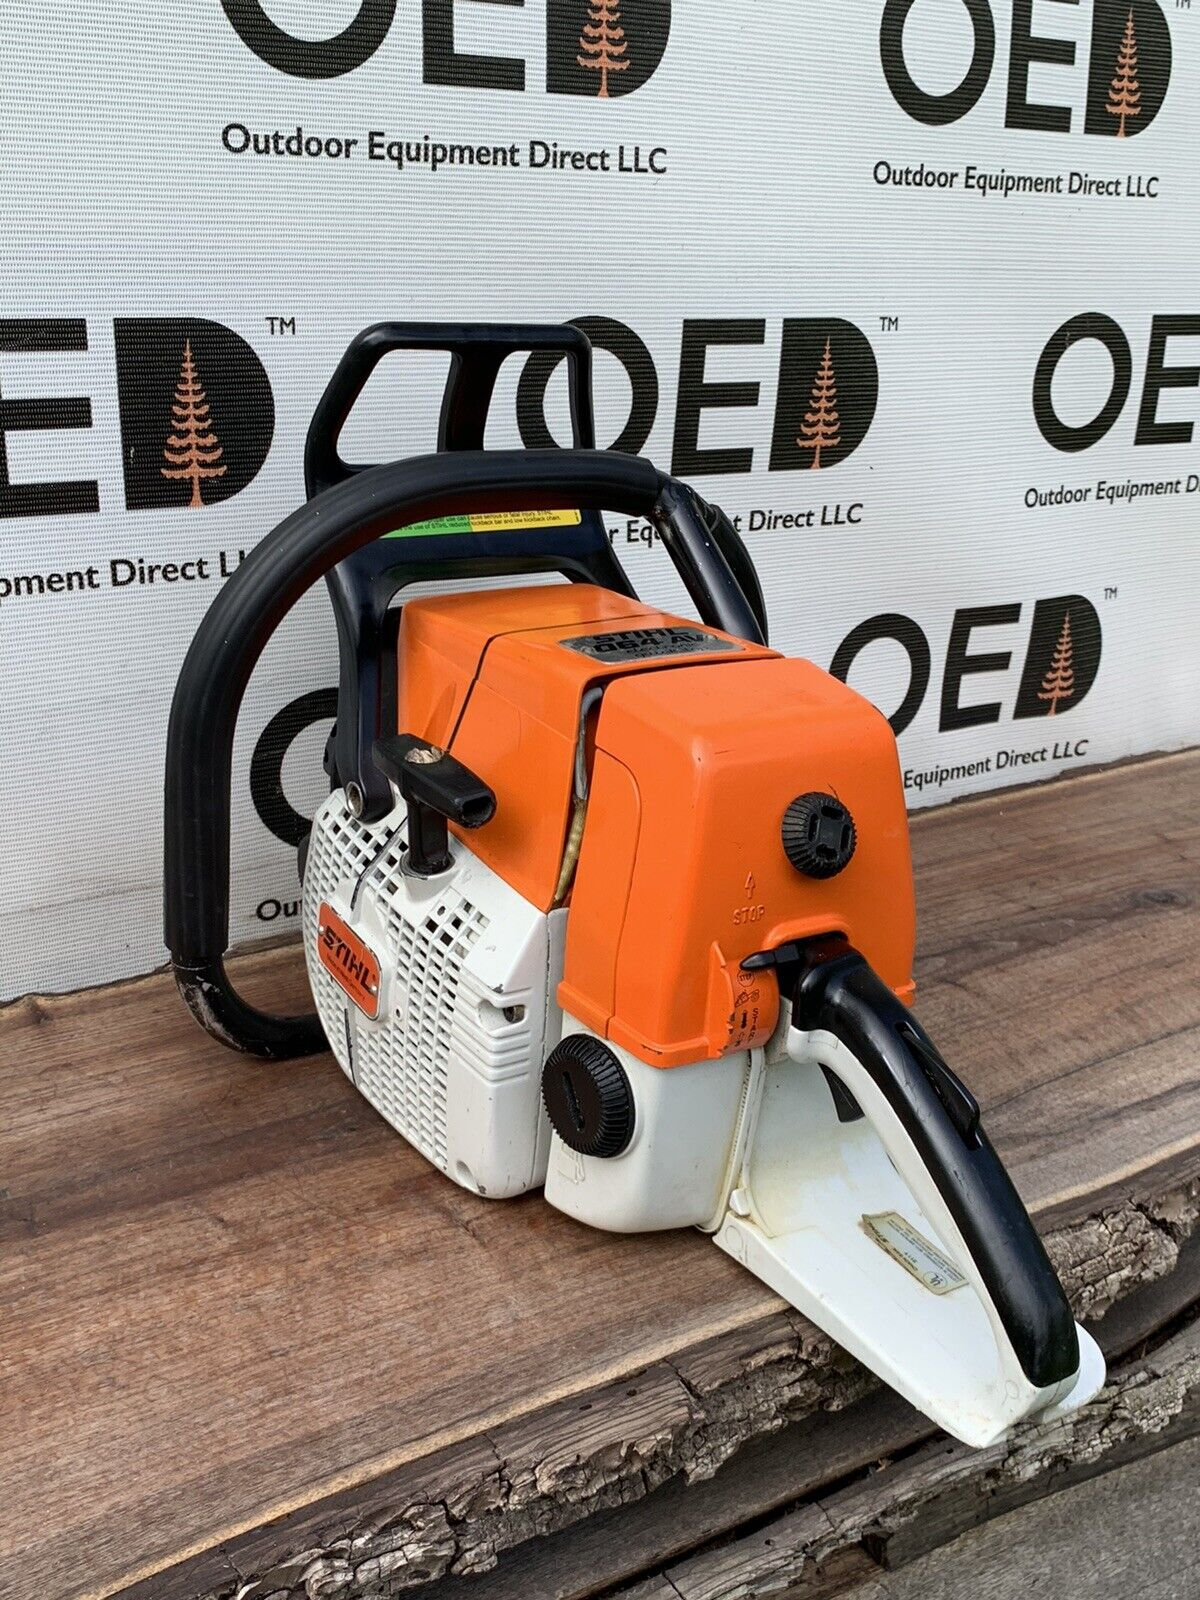 Stihl 064 AV Chainsaw - IMMACULATE SAW HARDLY USED - 3/4 Wrap - ALL OEM ORIGINAL. Available Now for 1547.55